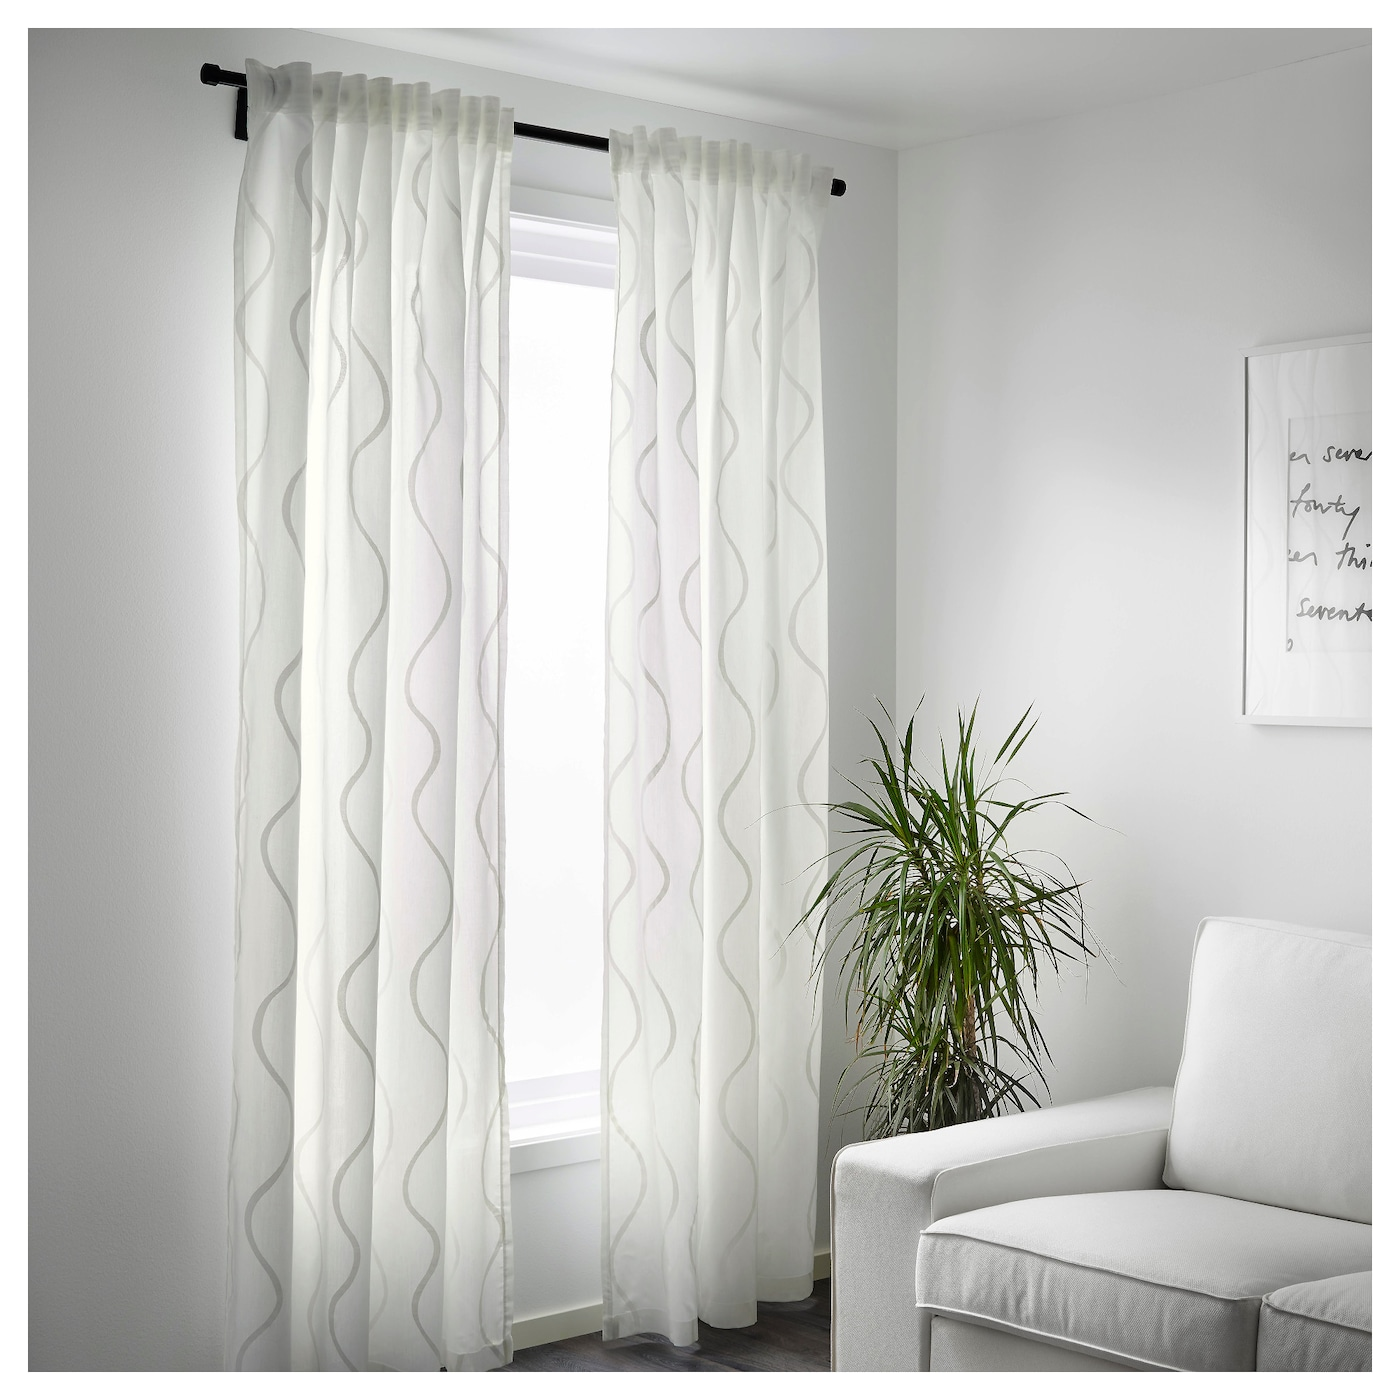 Hillmari curtains 1 pair white 145x250 cm ikea for White curtains ikea